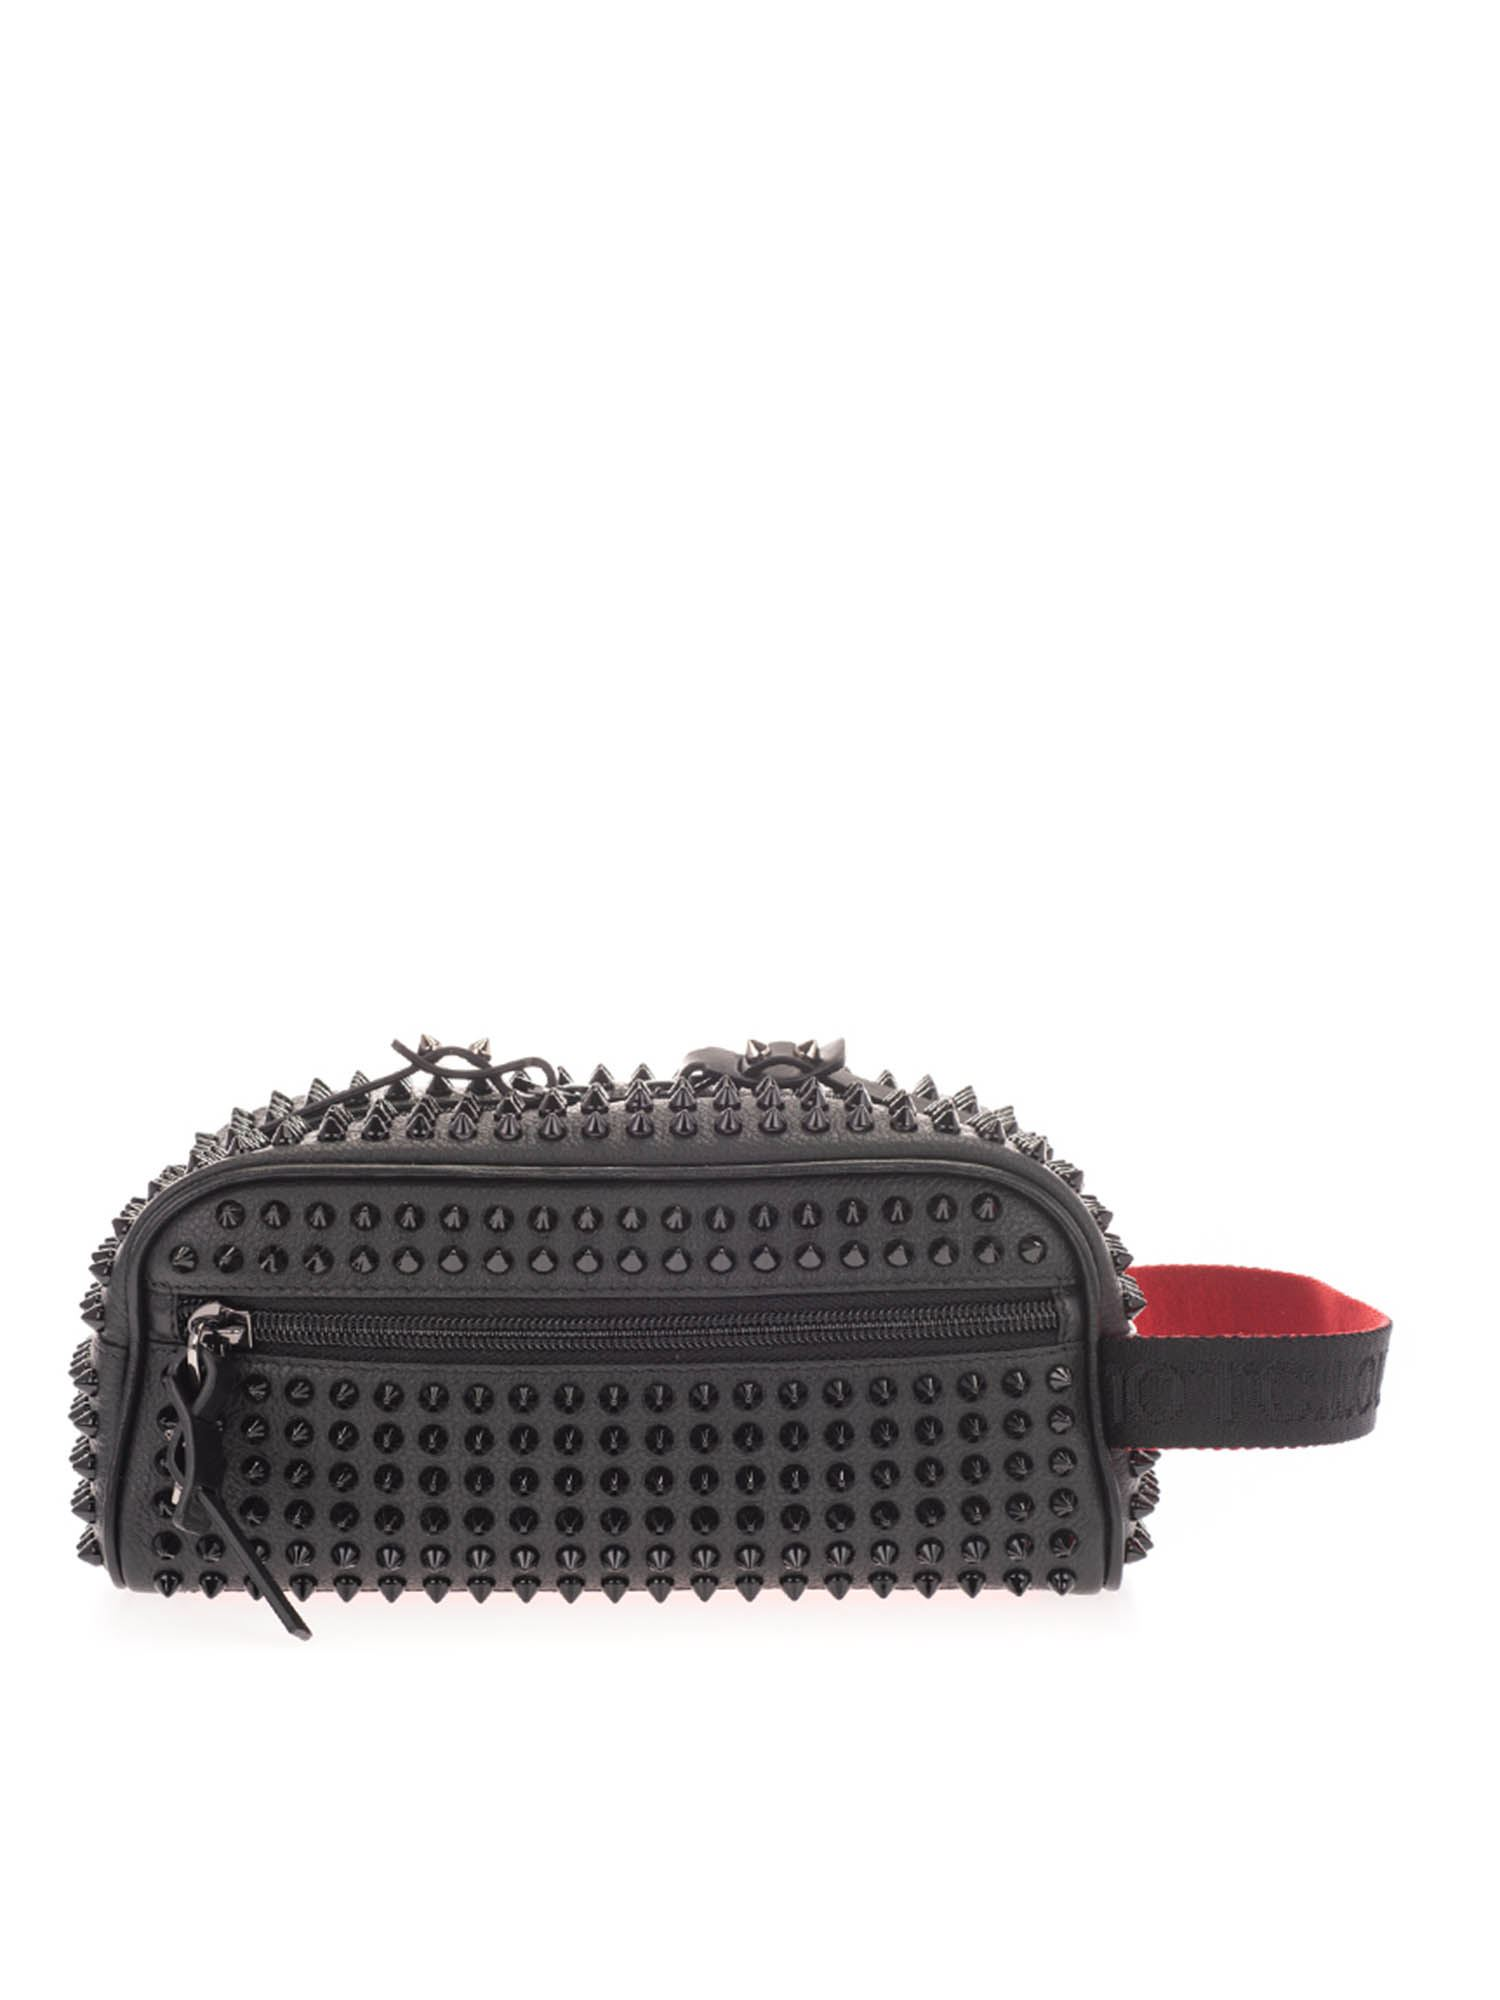 Christian Louboutin BLASTER WASH BAG IN BLACK